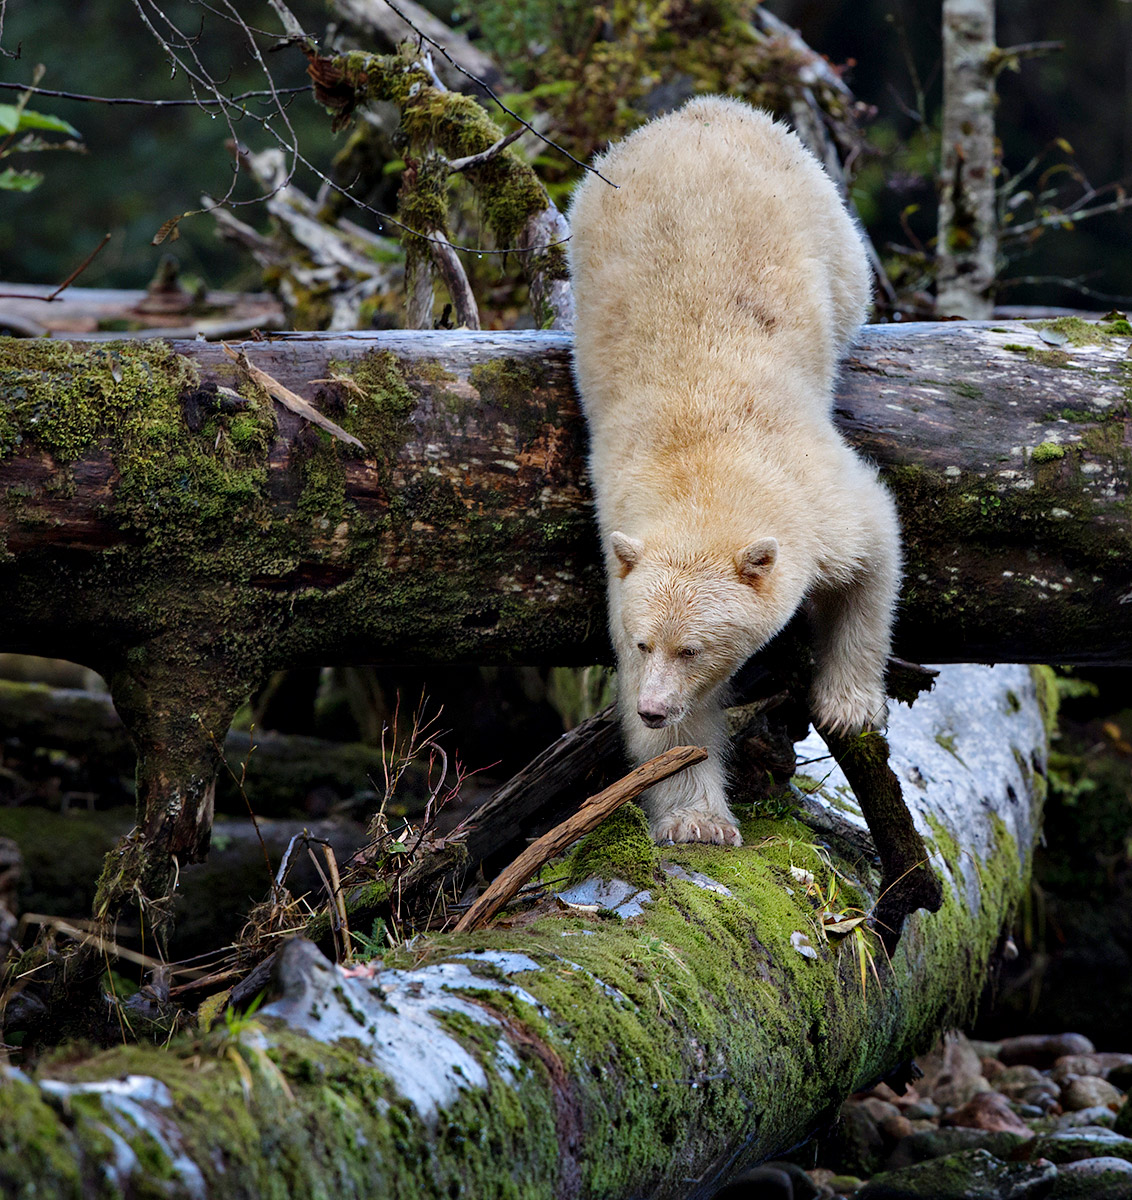 """""""Ah the Kermode. Only about 10% of the Black Bear population share the double-recessive gene that gives them their white color. I just love the body position as she ambles over the ancient fallen tree in search of food."""""""